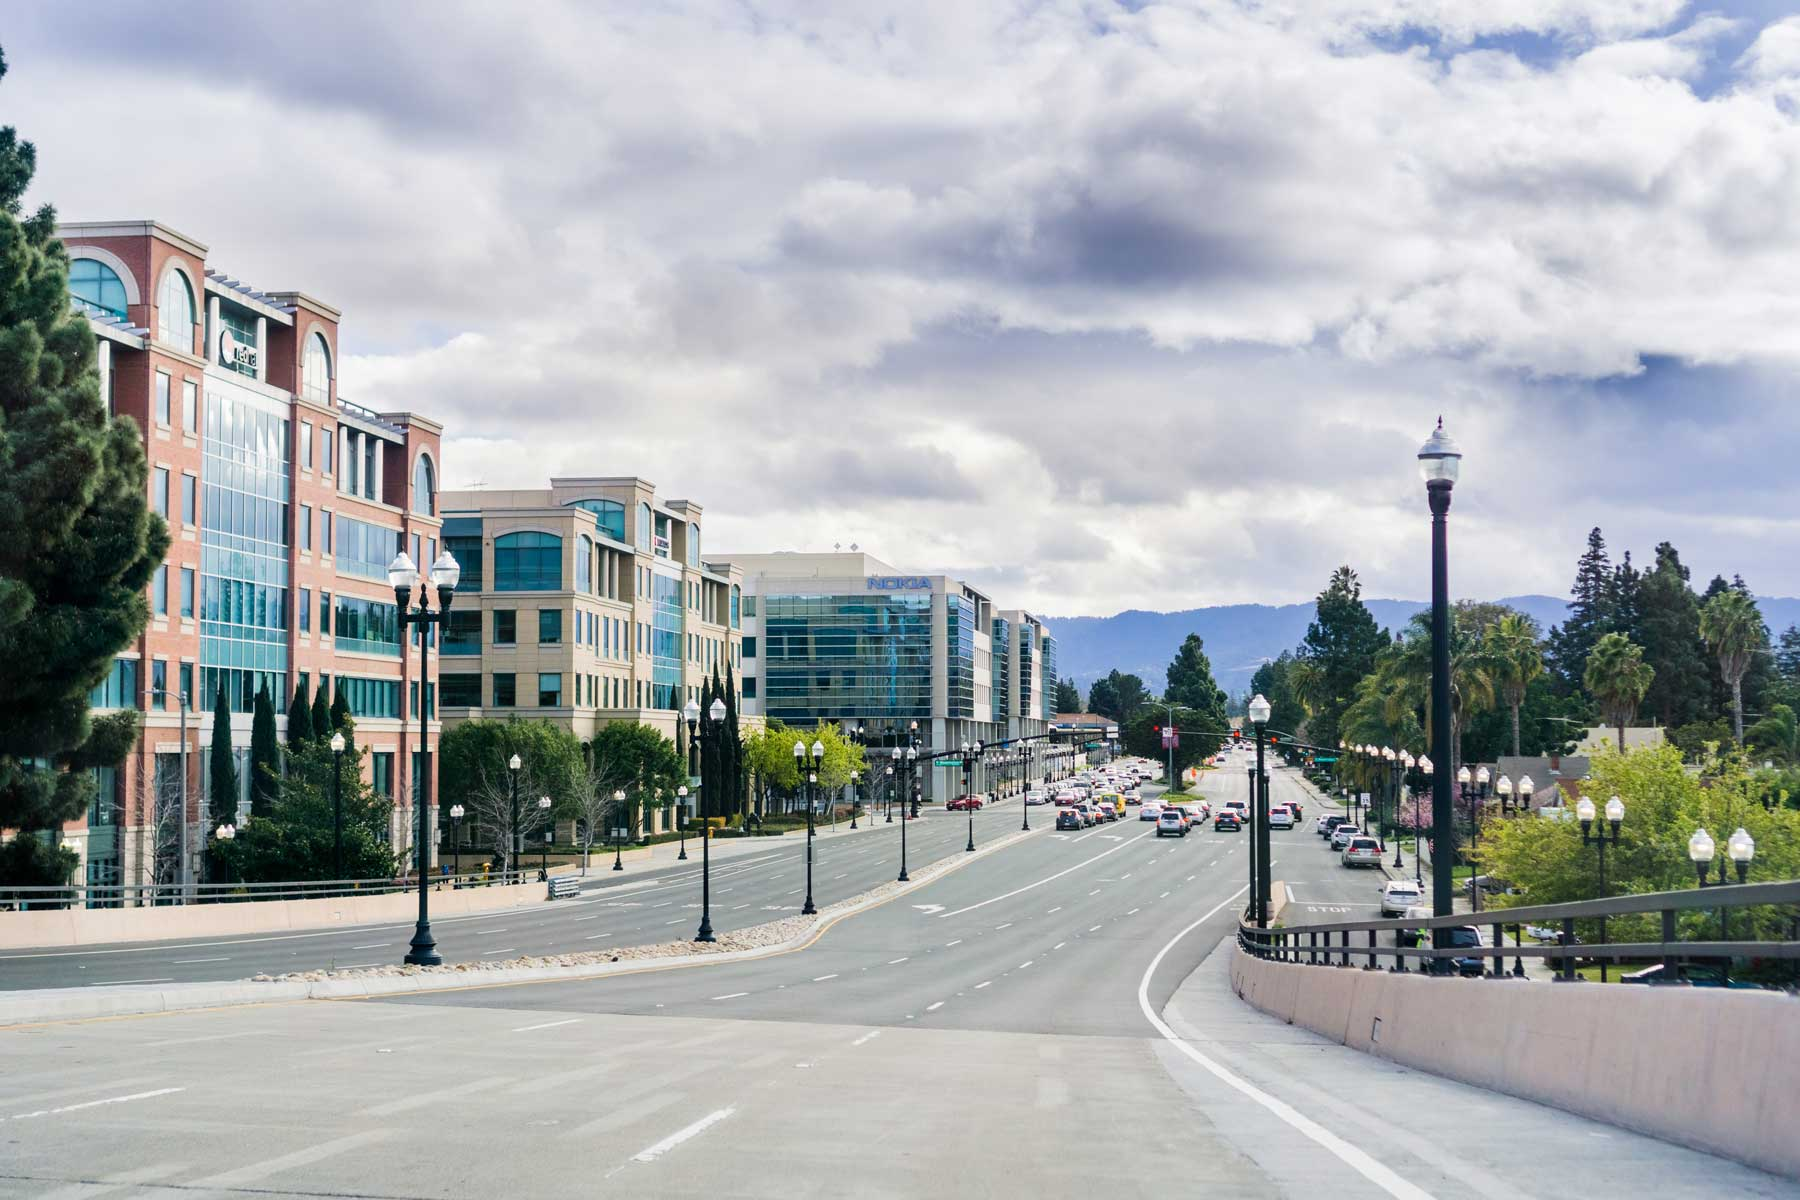 One of the main streets in downtown Sunnyvale, CA on a cloudy day — Photo by Sund0ryPhotography